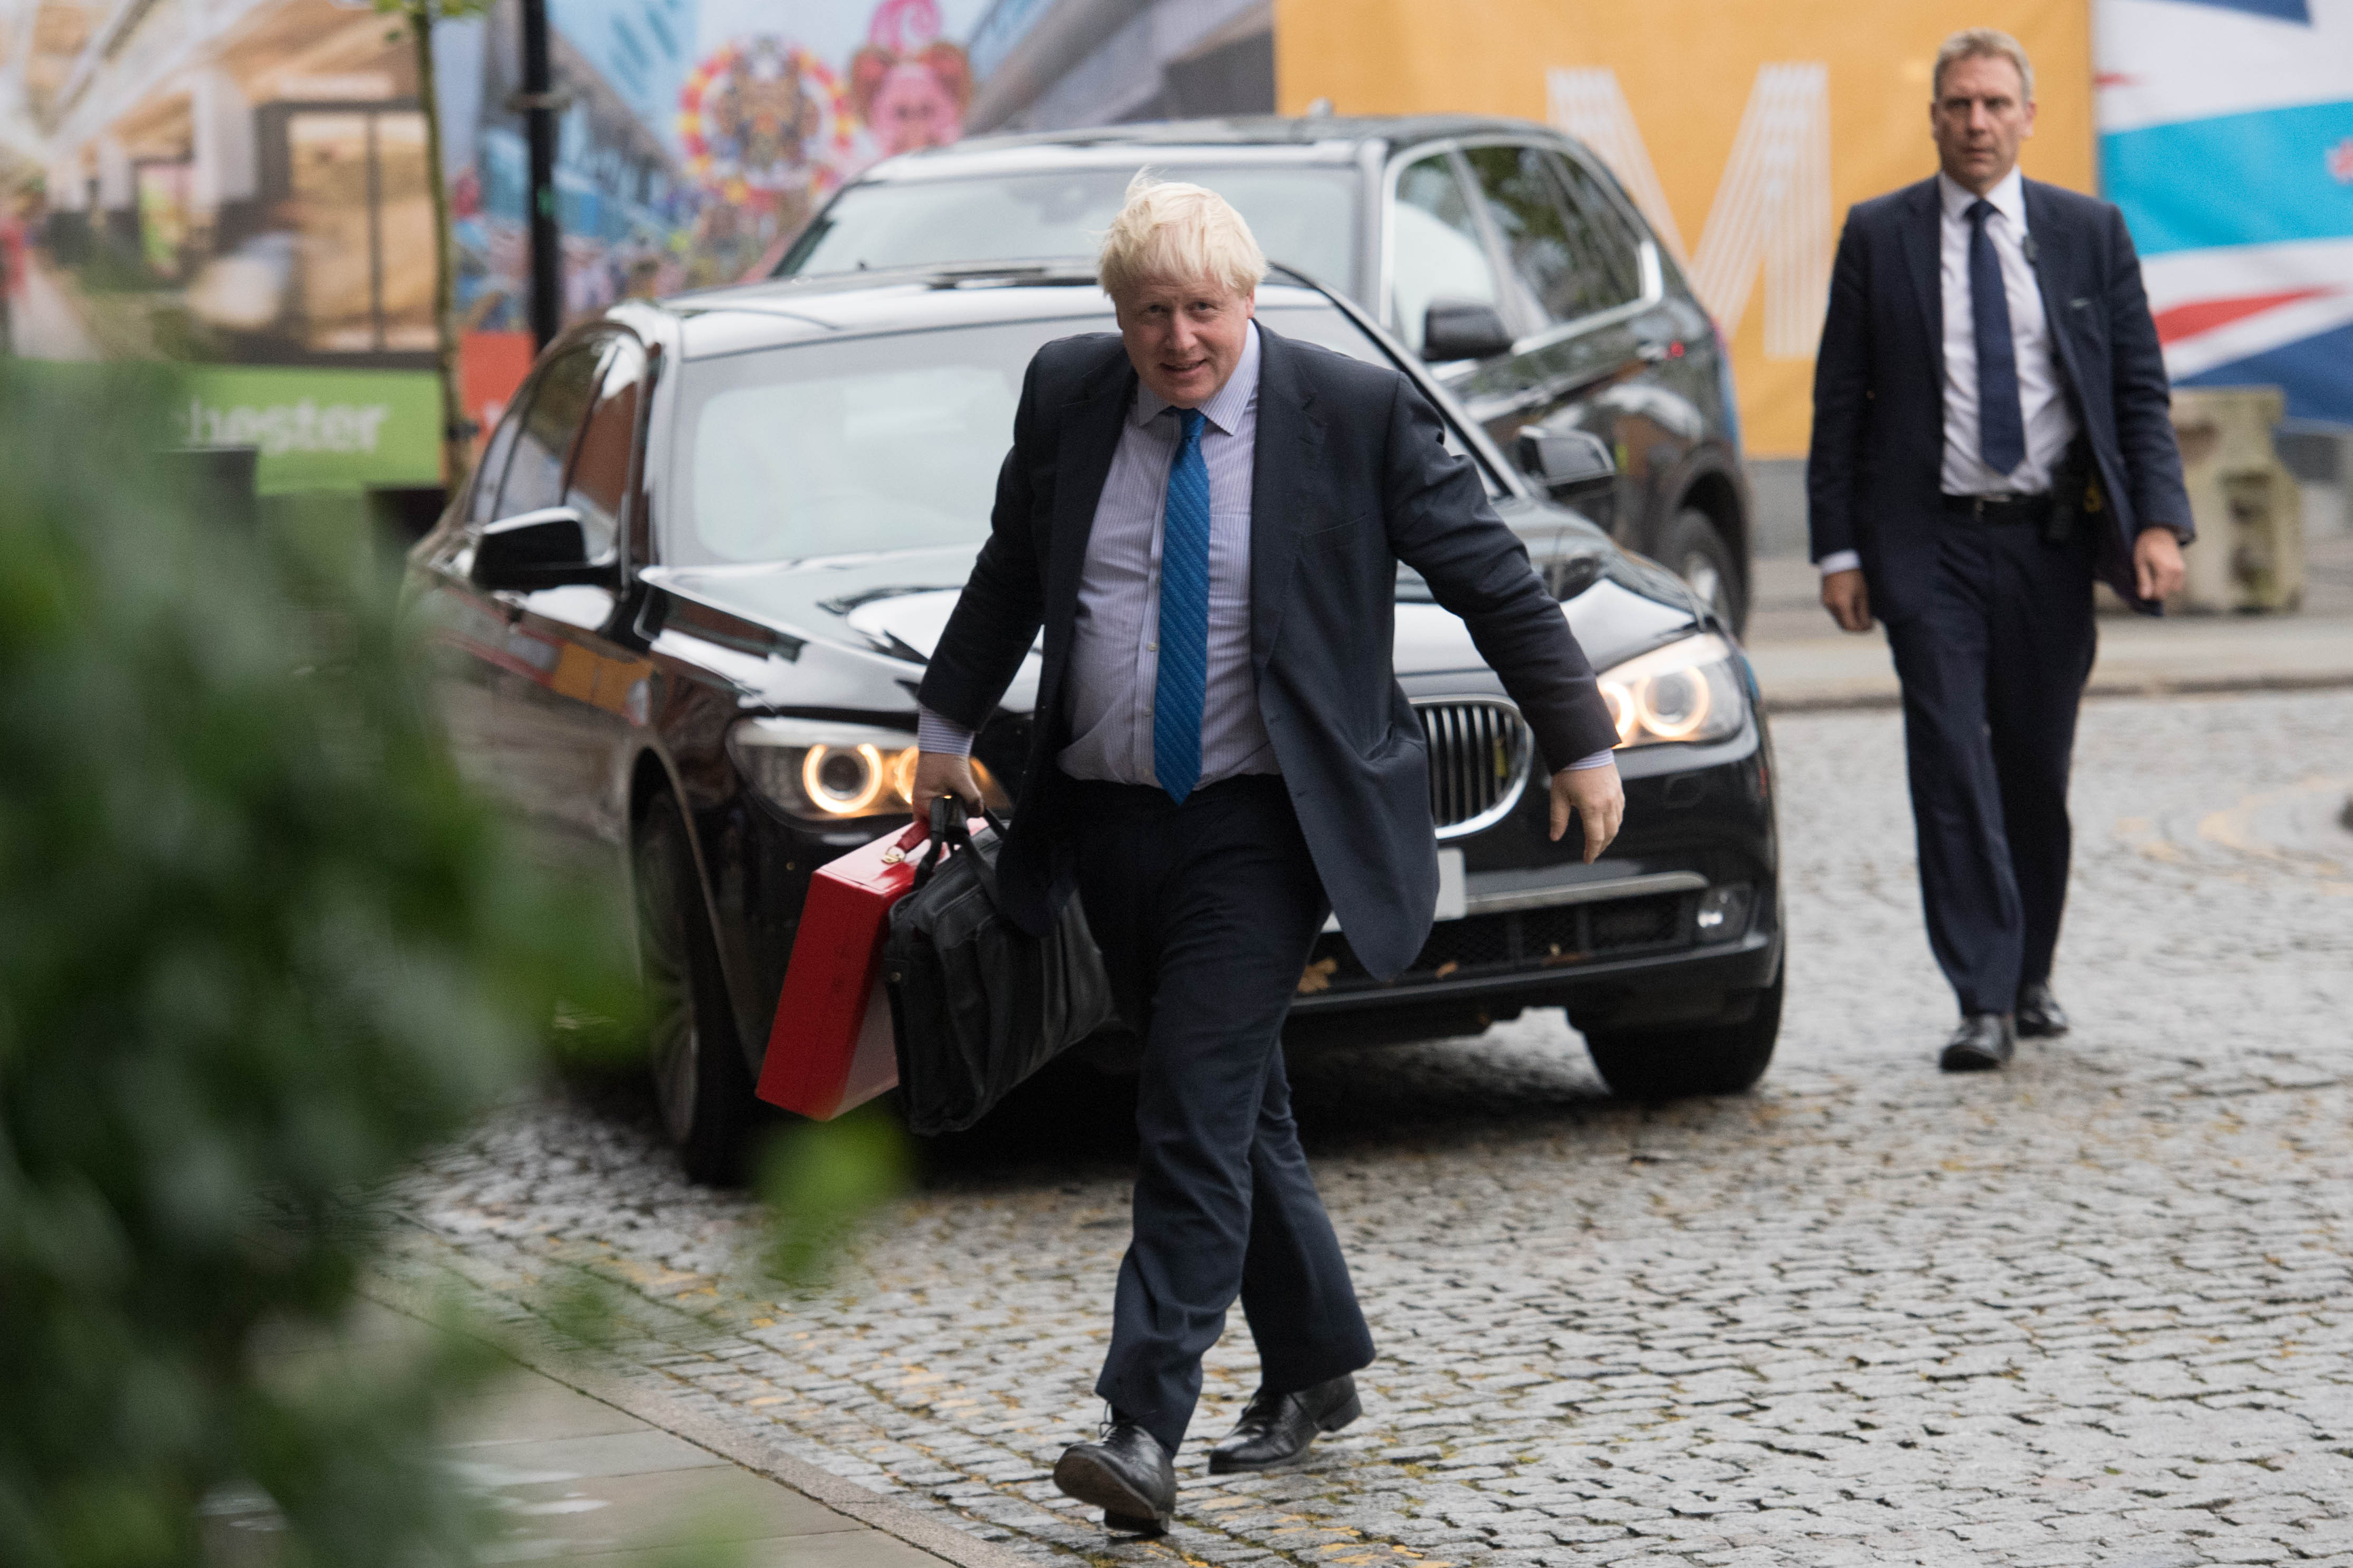 Foreign Secretary Boris Johnson arrives at the Conservative Party Conference at the Manchester Central Convention Complex in Manchester.